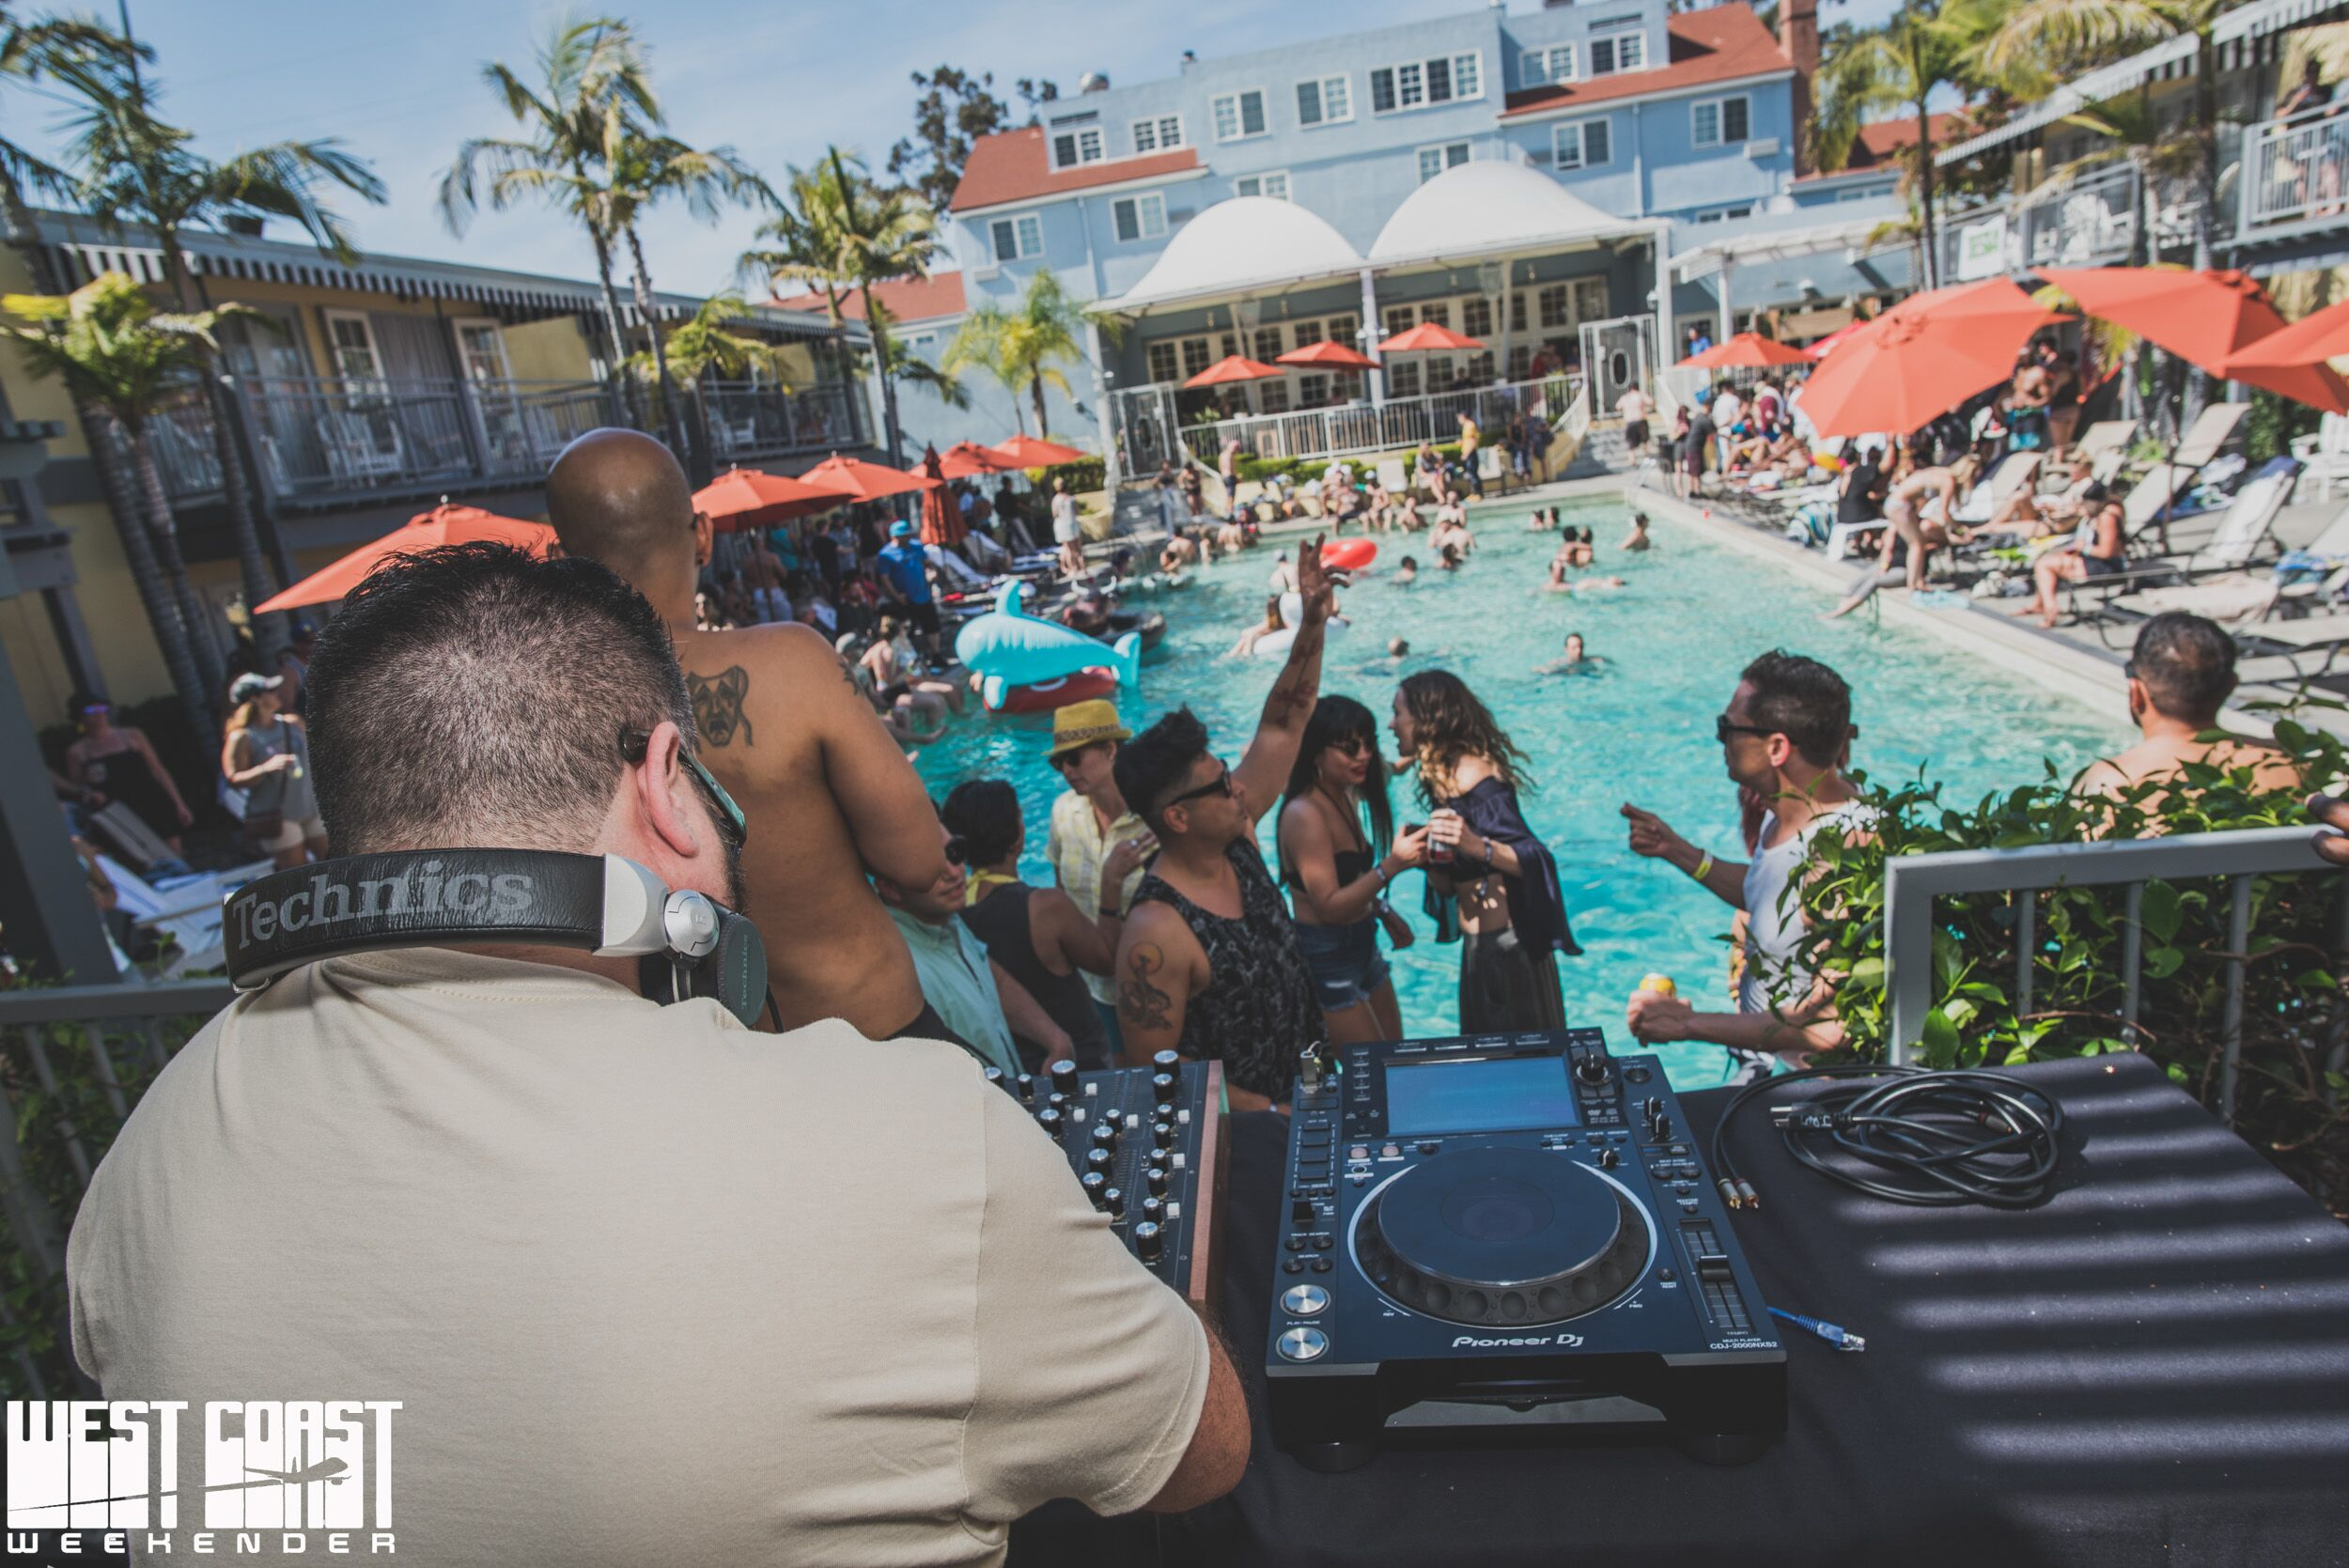 Pool Party at West Coast Weekender 2018    Photo Credit: Diva Hammad